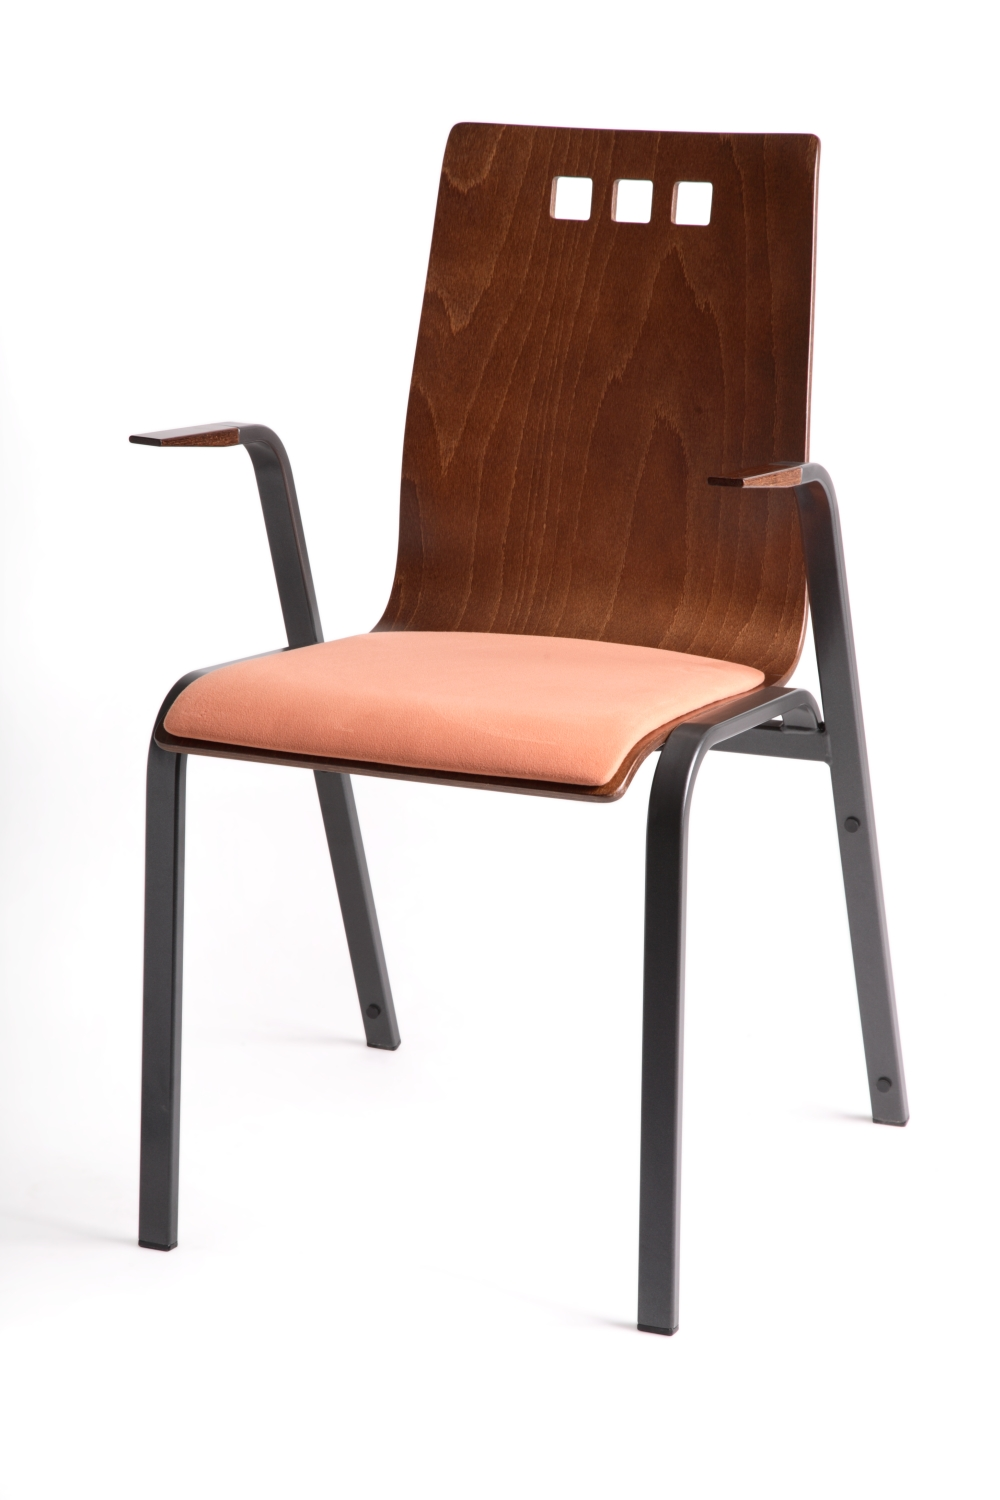 Conference room chairs contemporary 50 0 3000 0 pieces for Conference room chairs modern